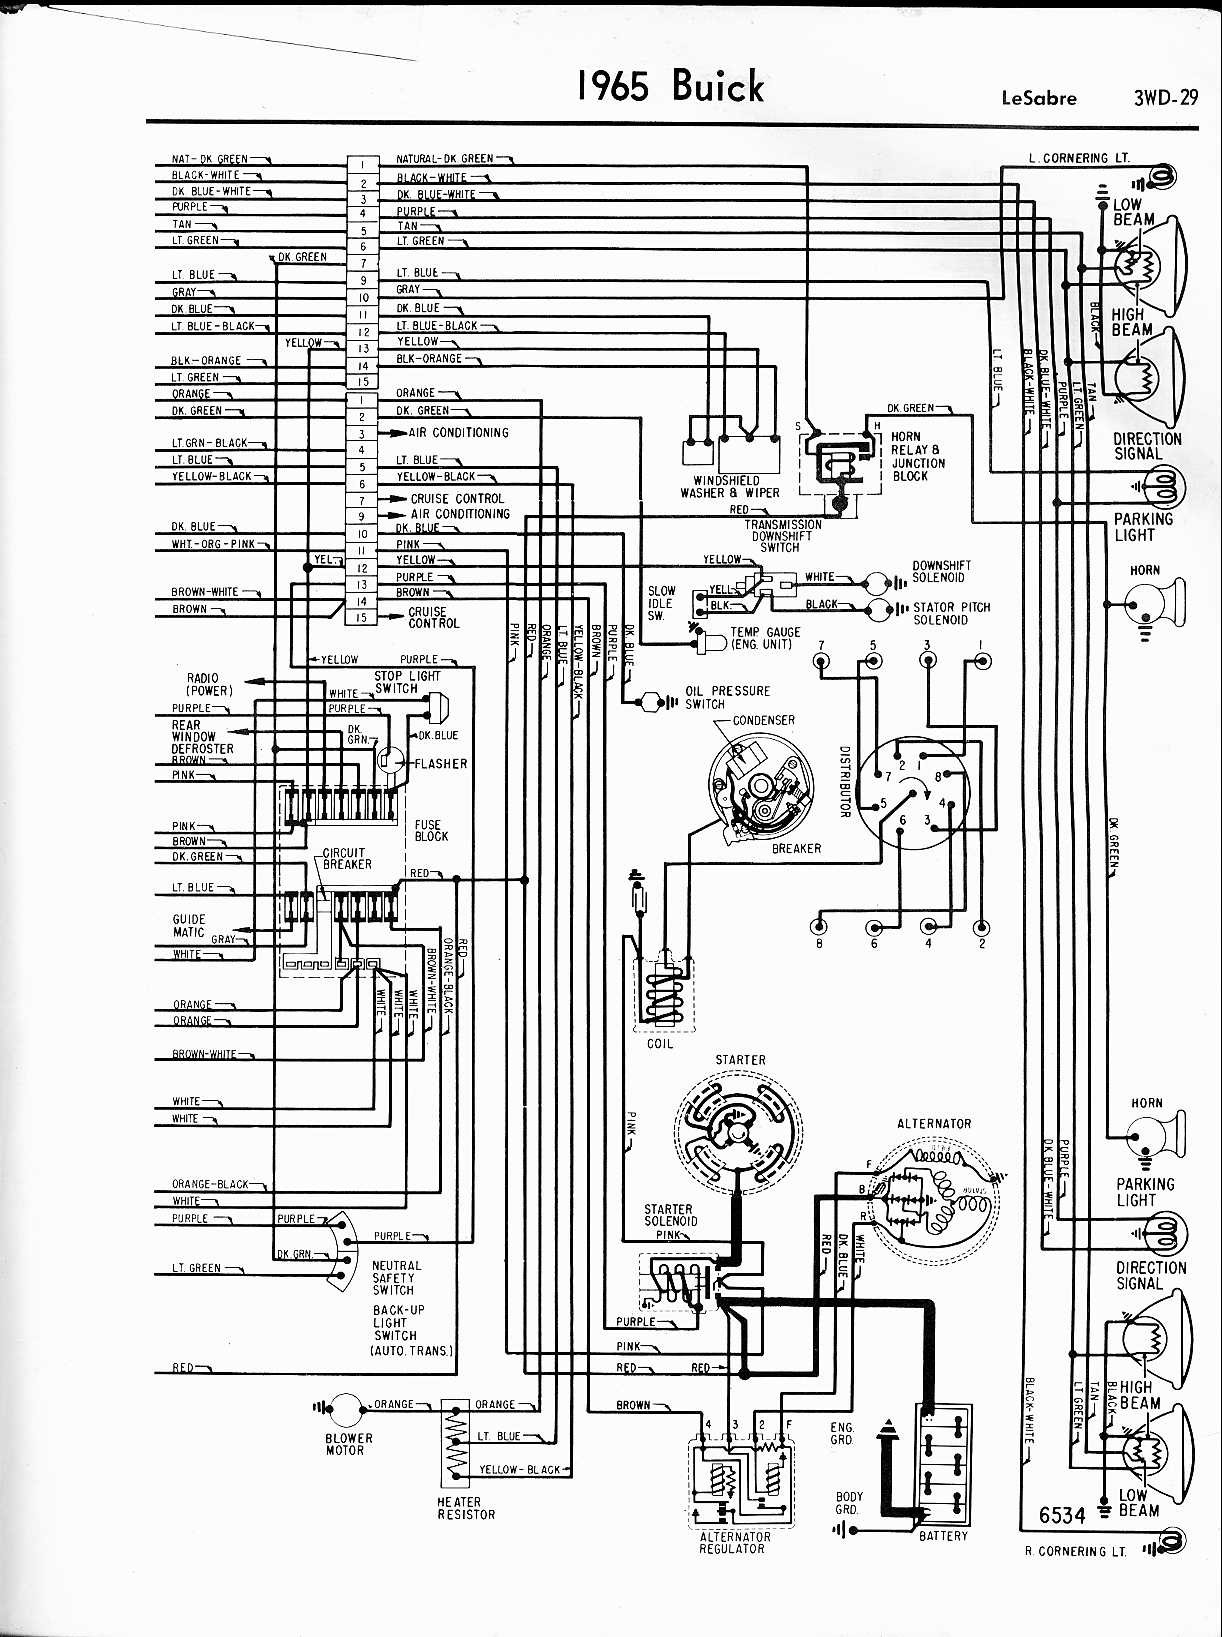 Car Heater Blower Motor Wiring Diagram For 96 Ford Ranger Furthermore